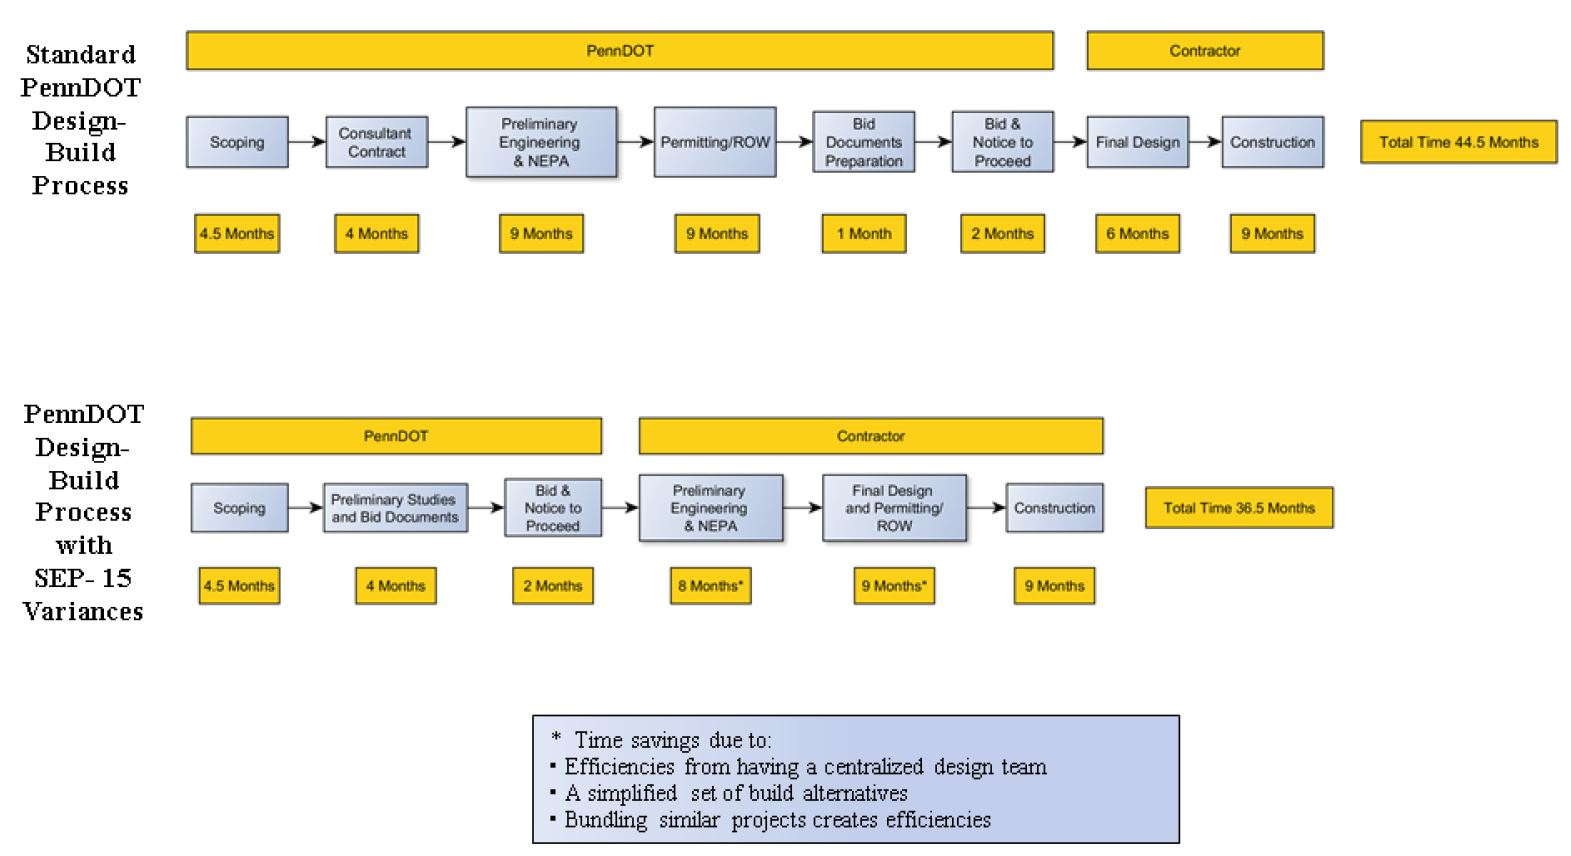 rfp process diagram wiring for car ignition system fhwa - center innovative finance support p3 toolkit: programs, institutions and financial ...